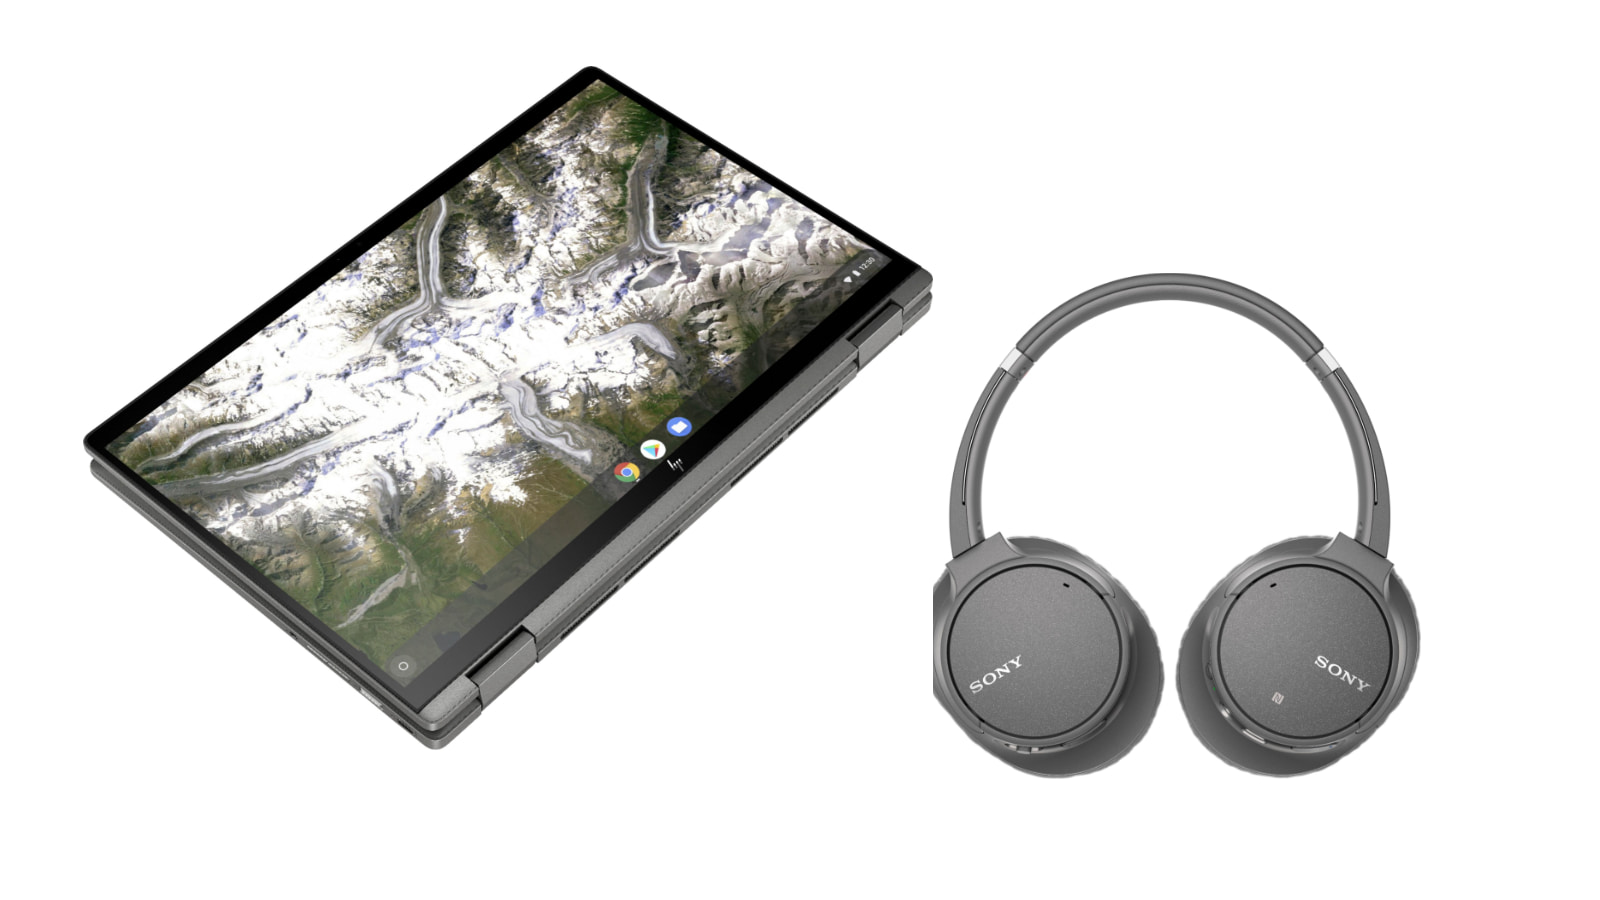 Student Deals: Get up to $230 off a new Chromebook and score a free pair of $200 Sony noise-canceling headphones